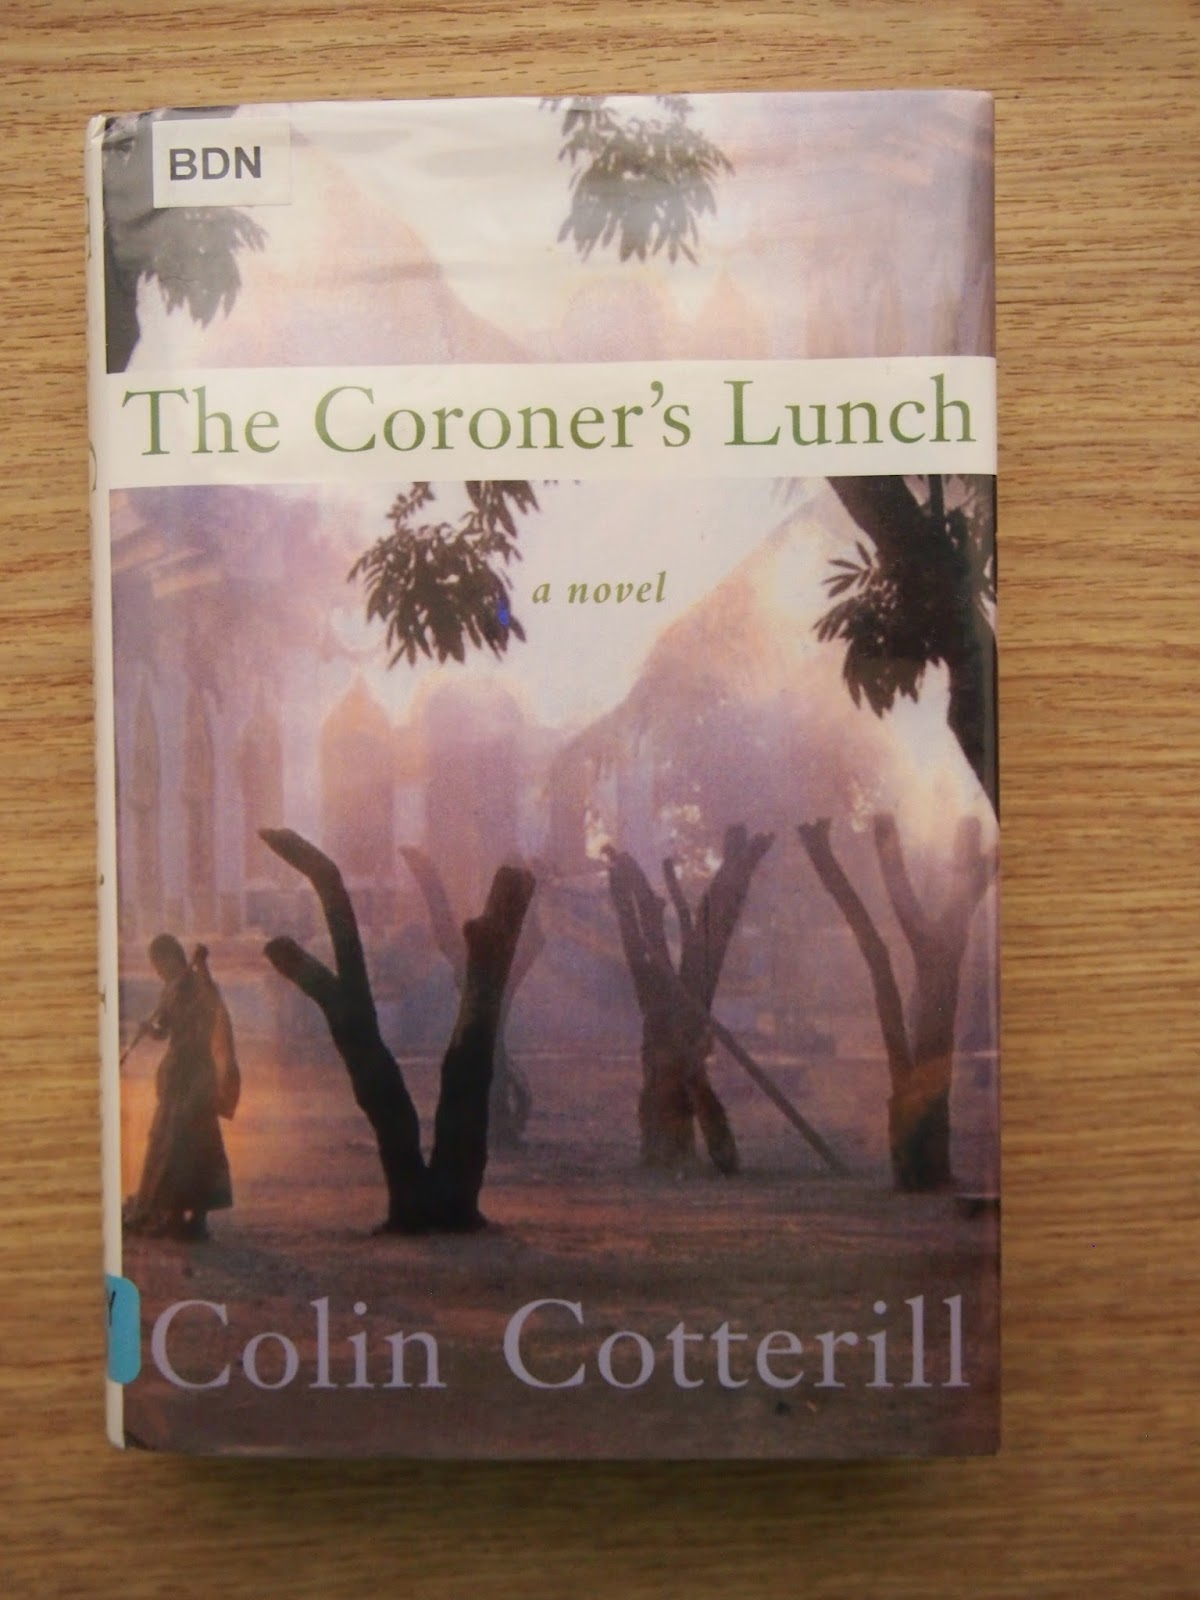 An image of The Coroner's Lunch by Colin Cotterill